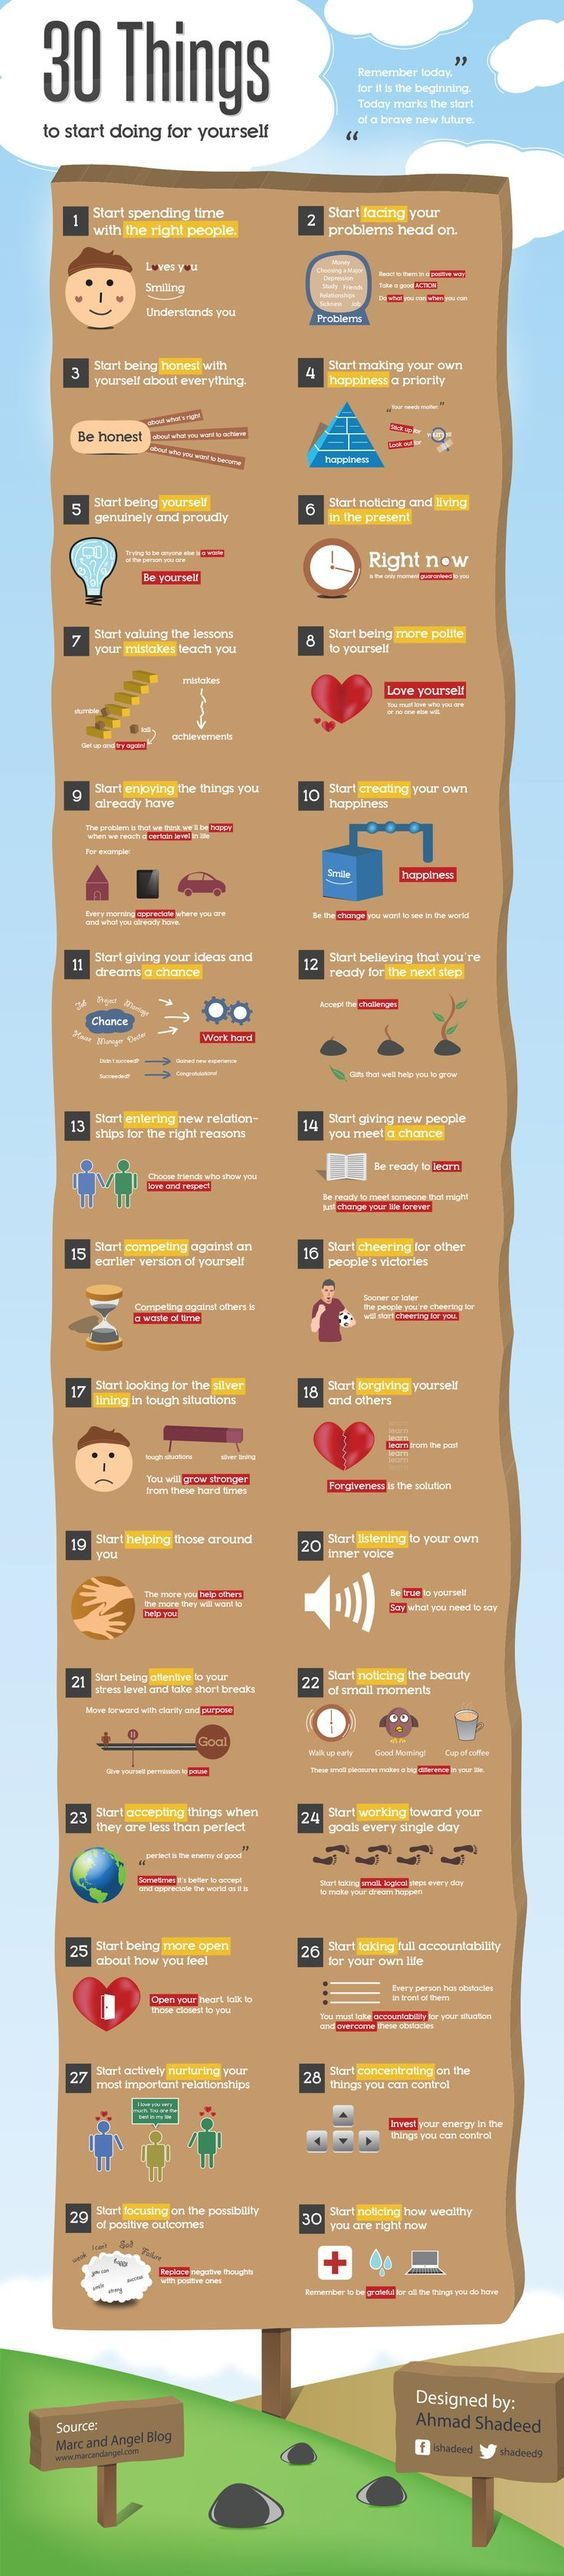 A positive 'to-do' list for the days, weeks and months ahead -- via: http://www.marcandangel.com/2011/12/18/30-things-to-start-doing-for-yourself/